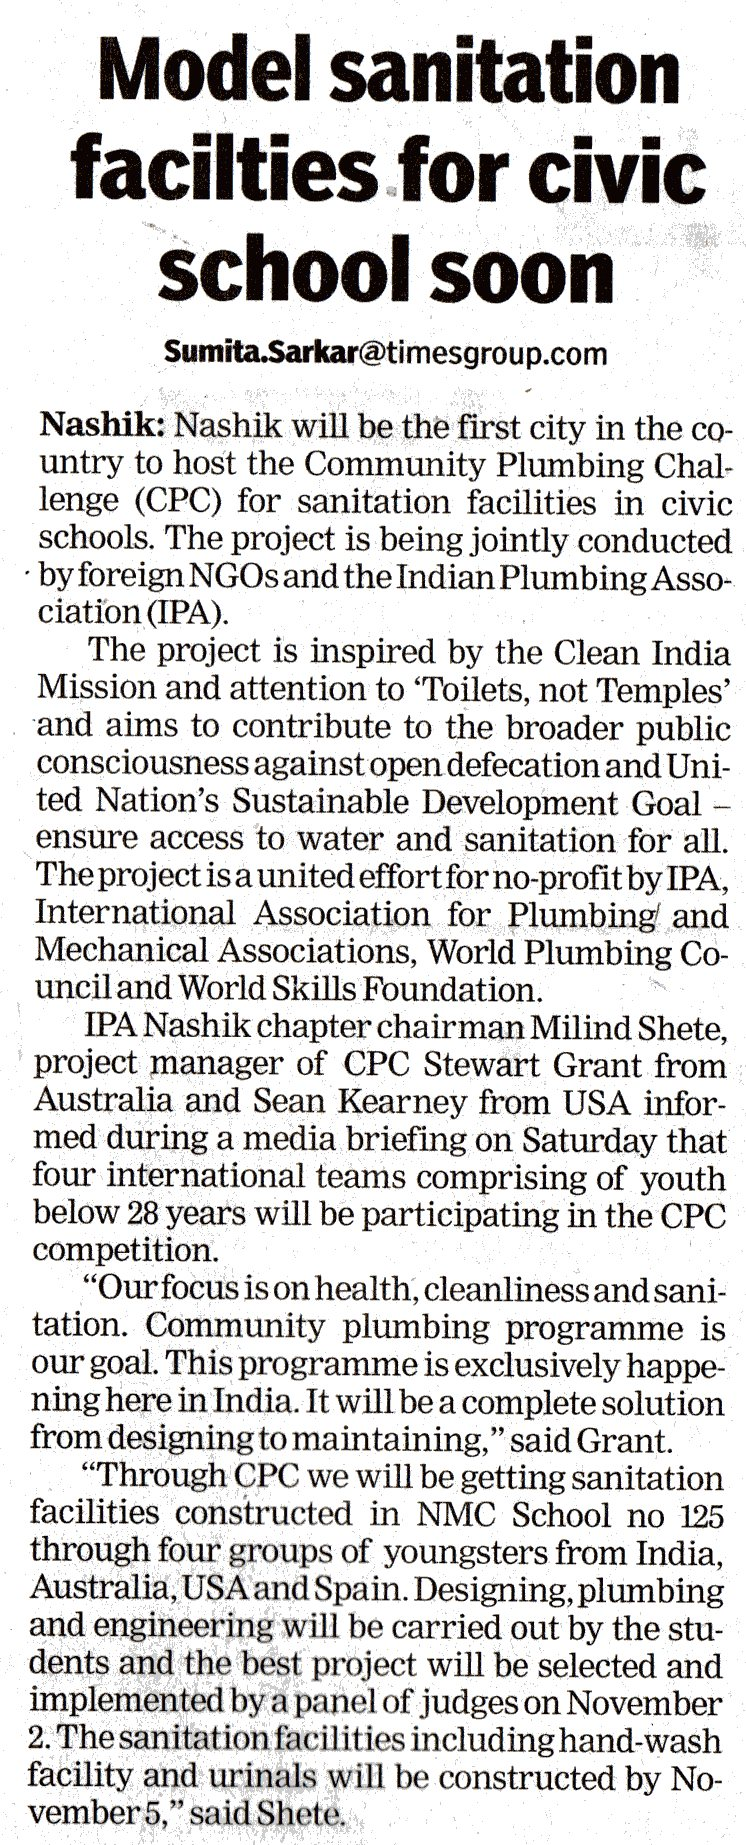 Community Plumbing Challenge 2015: Press clippings